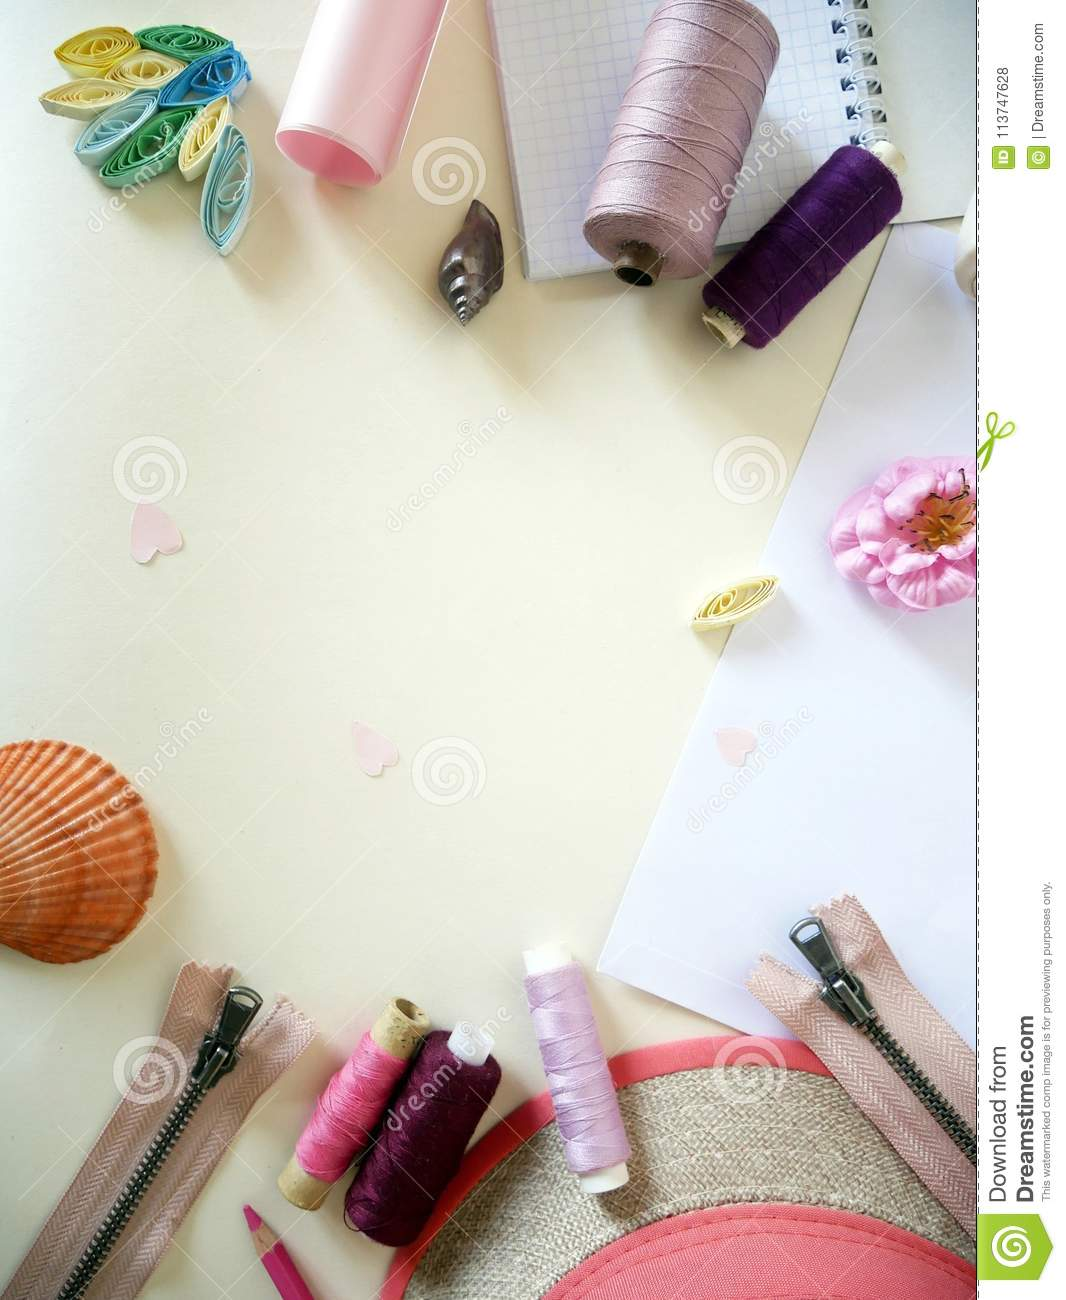 Items For Needlework On A Light Background Preparation Mothers Day Objects In Pastel Color Creativity And The Holiday